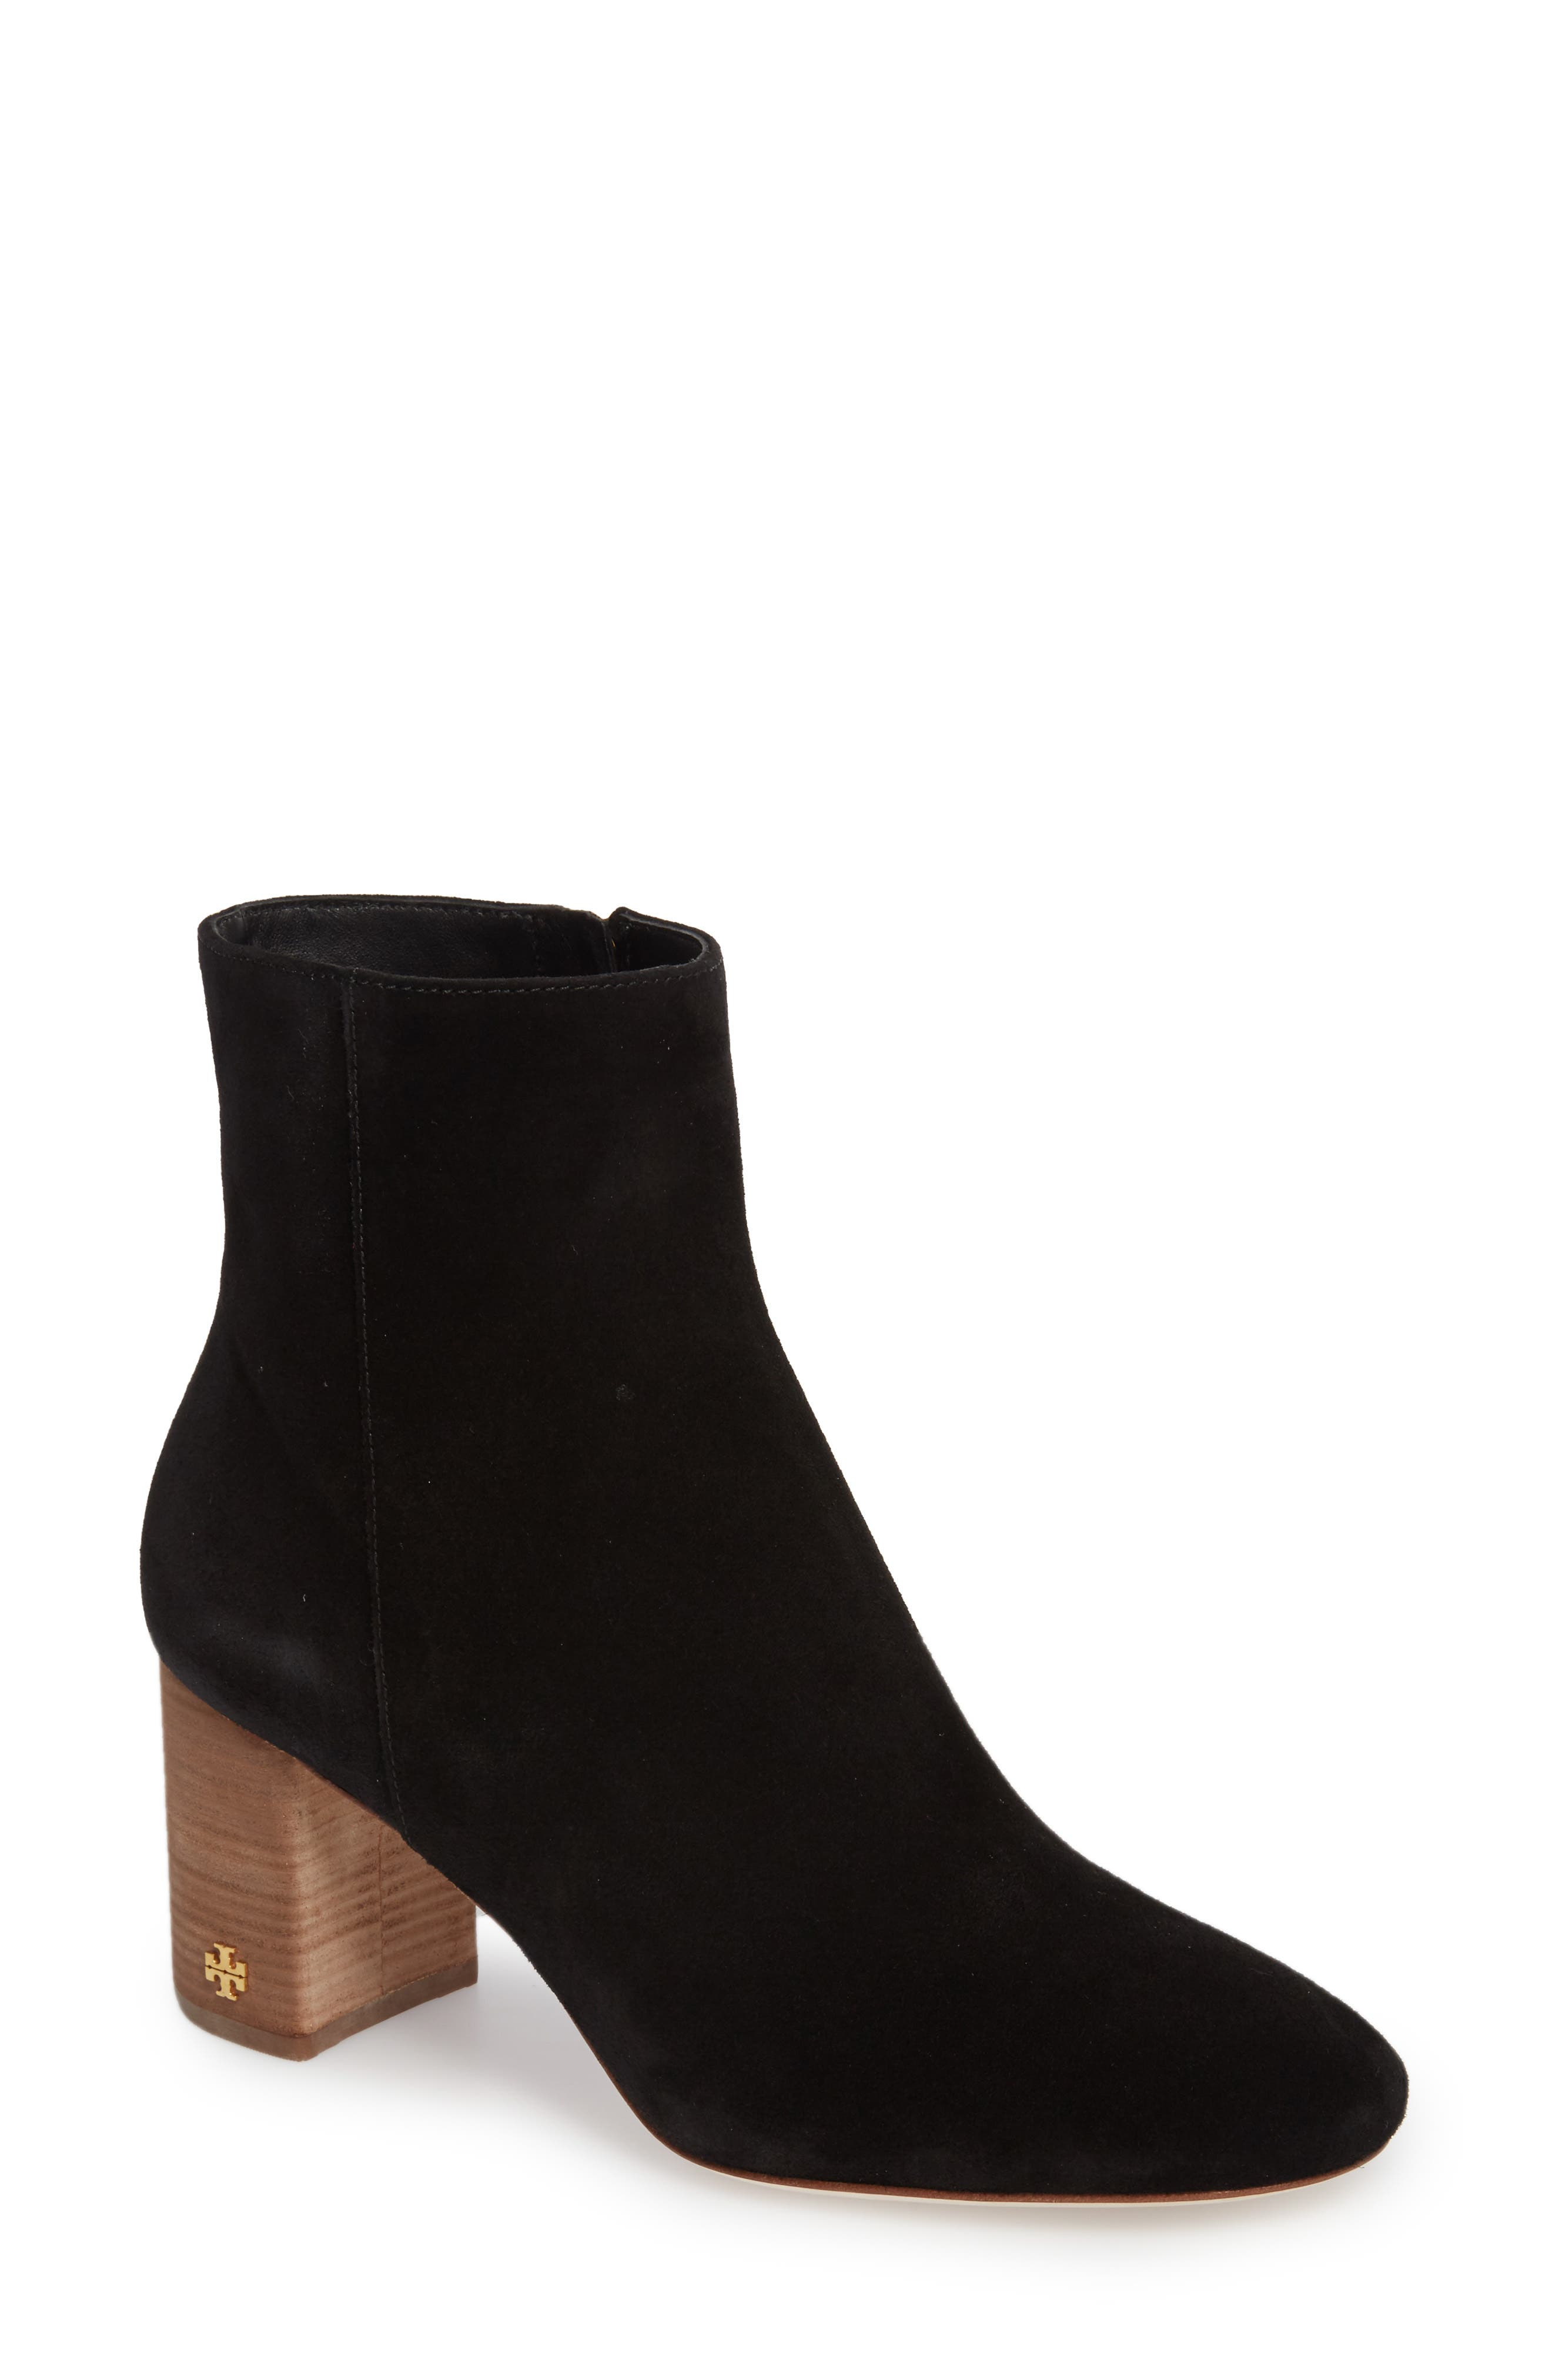 Alternate Image 1 Selected - Tory Burch Brooke Bootie (Women)